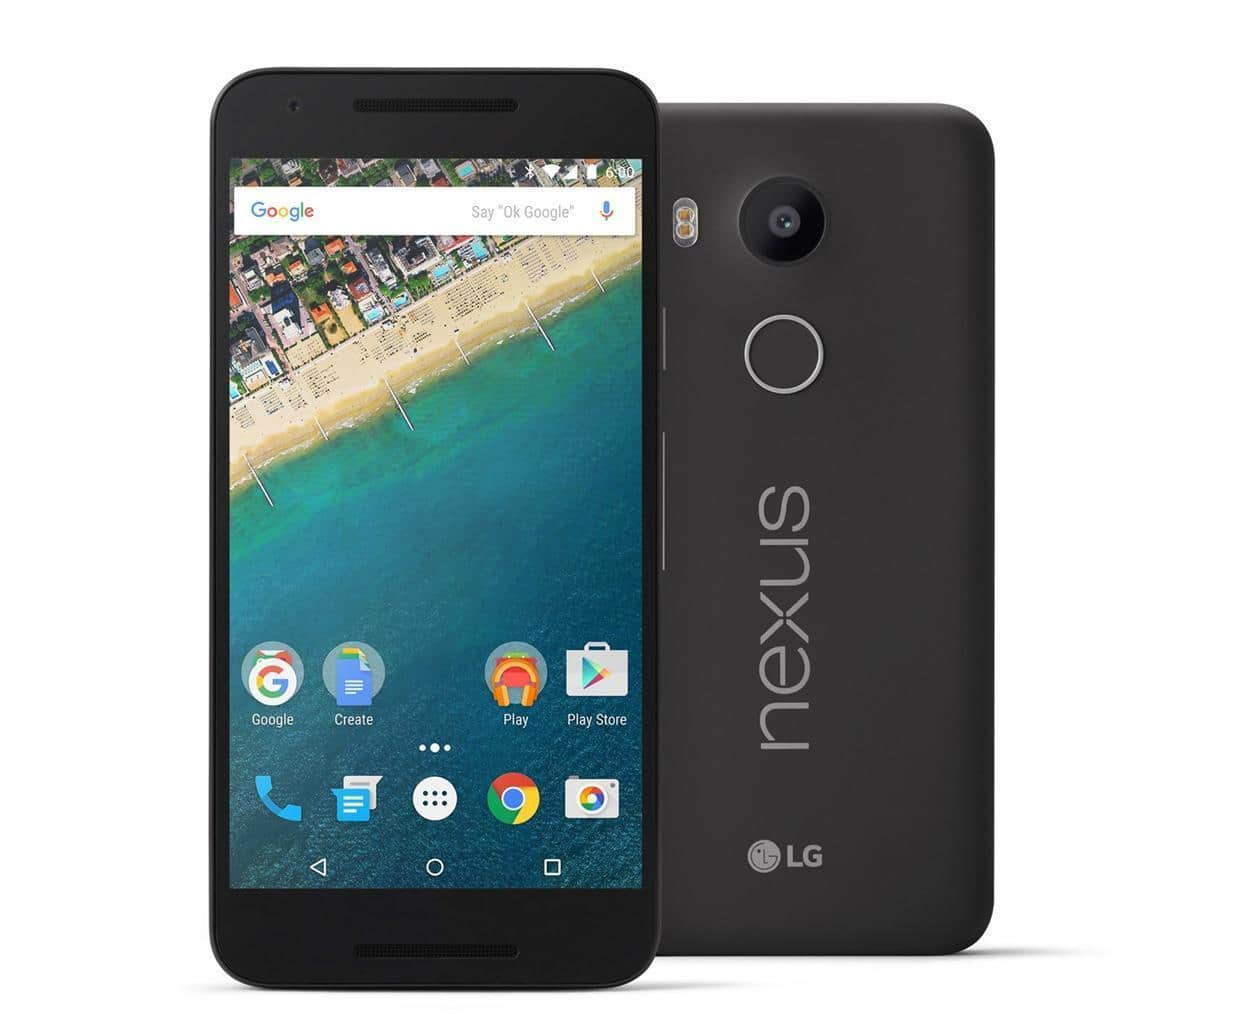 LG Nexus 5X 32GB H790 4G LTE Android Unlocked Smartphone $239.99 + Free Shipping